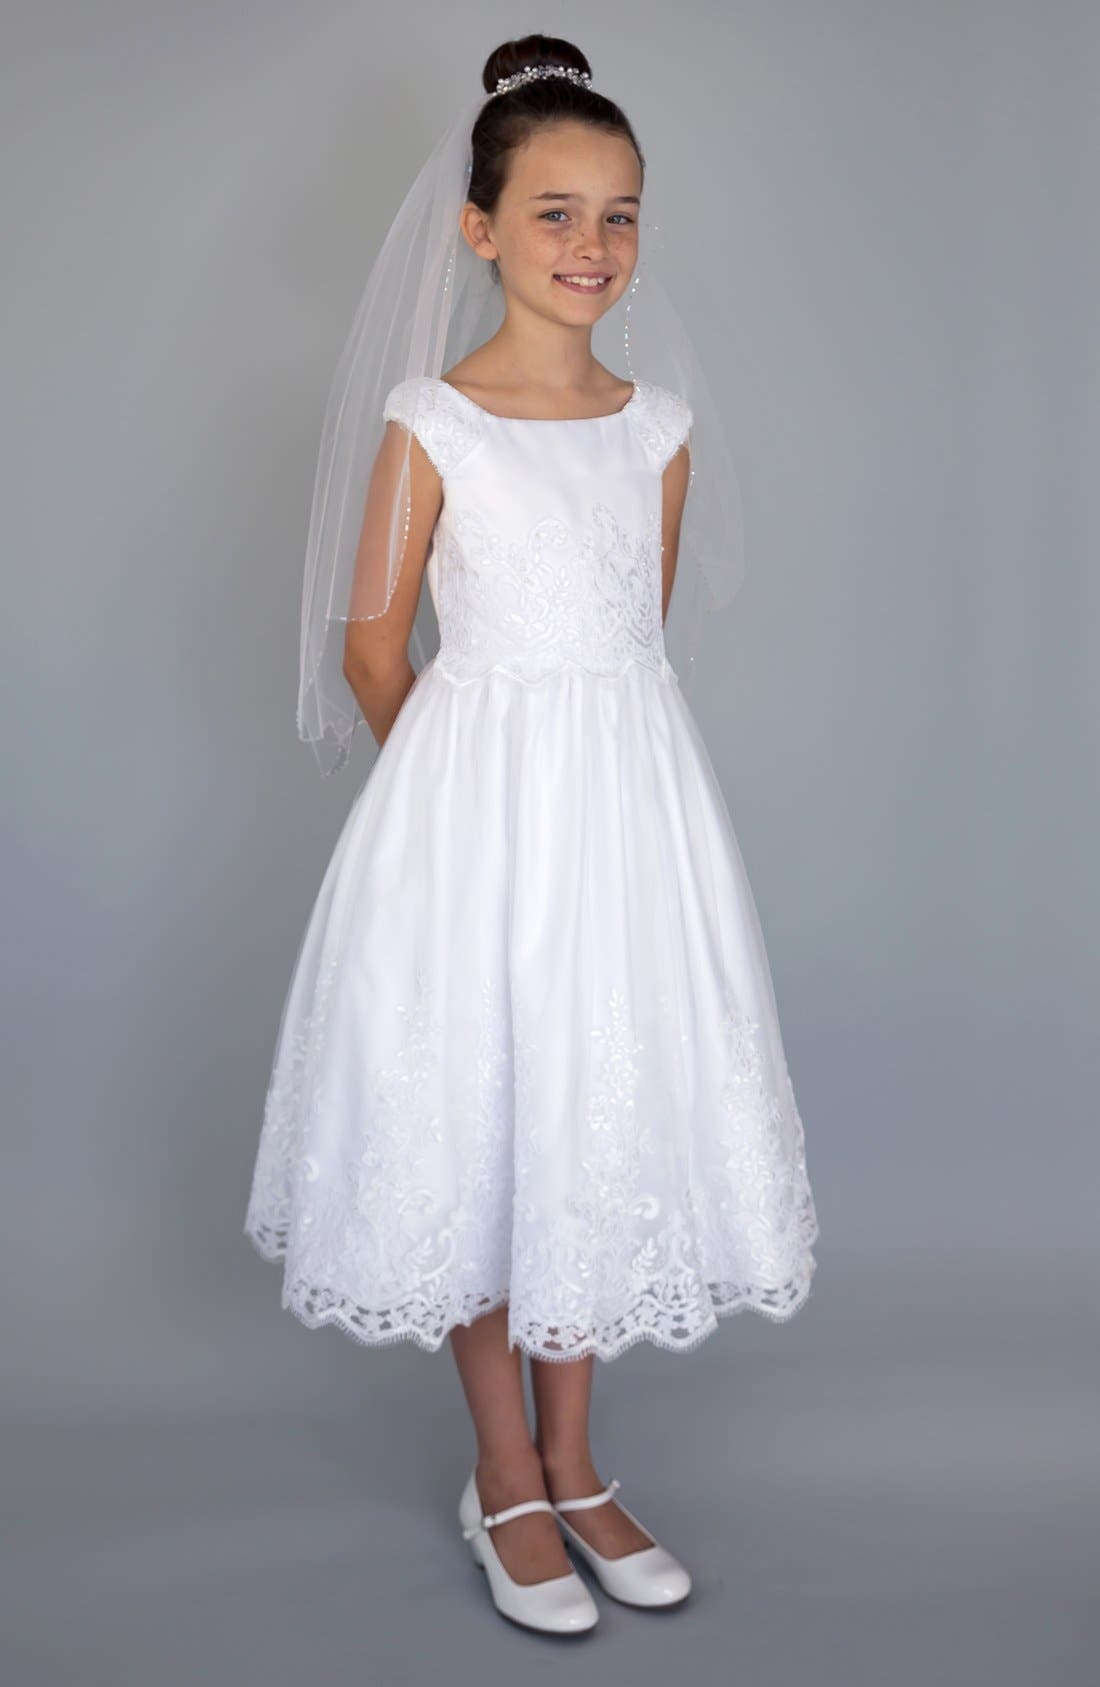 Embroidered Cap Sleeve Dress,                             Main thumbnail 1, color,                             100